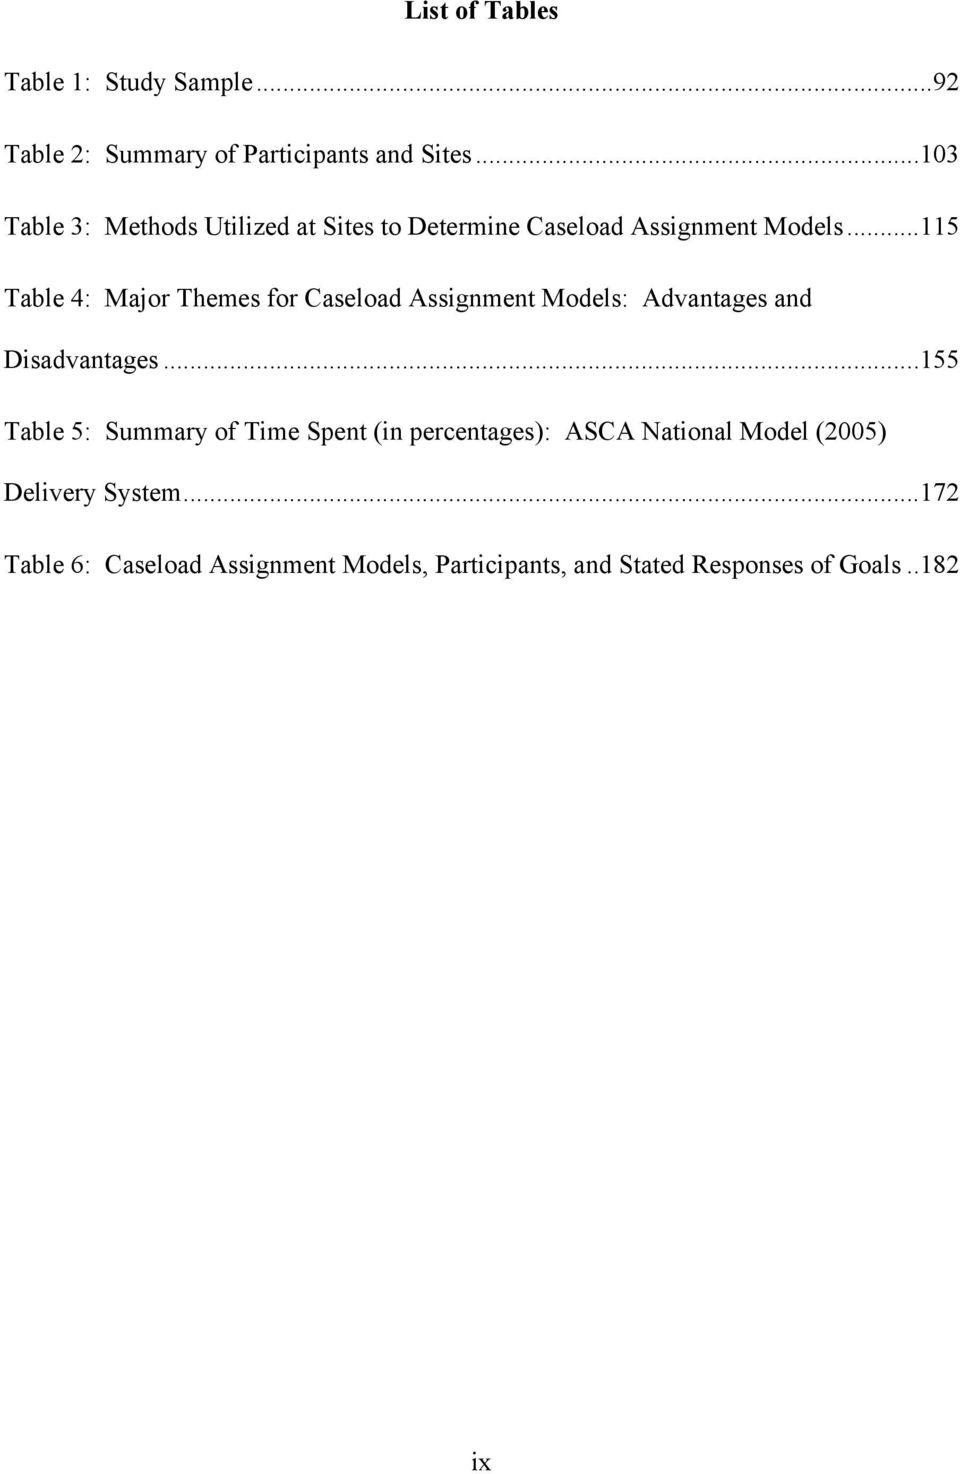 ..115 Table 4: Major Themes for Caseload Assignment Models: Advantages and Disadvantages.